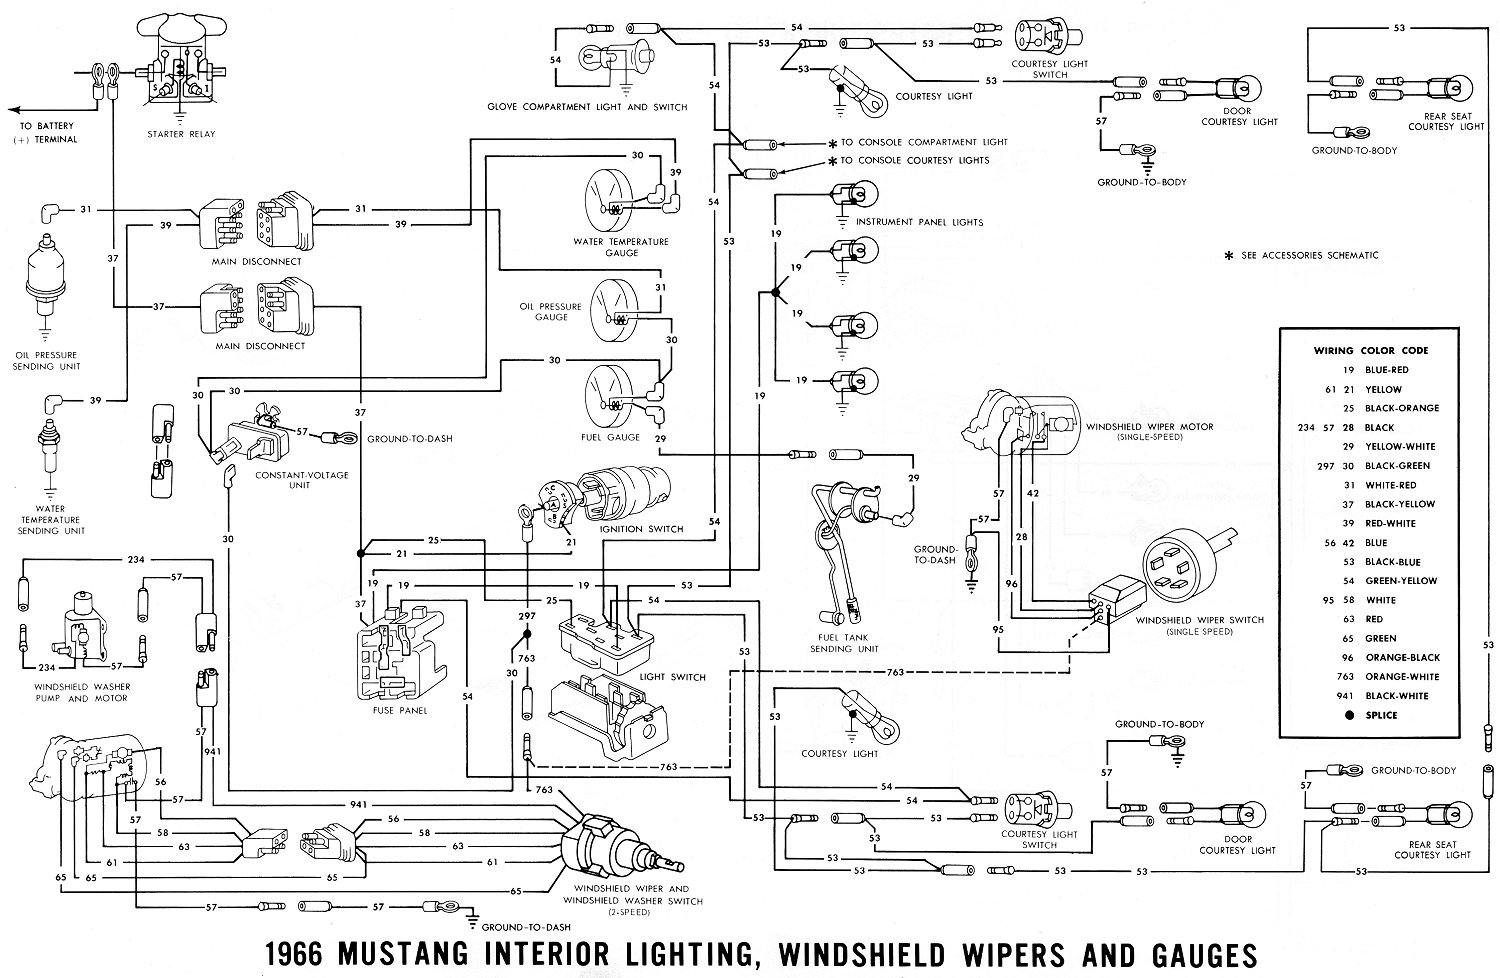 ment 15329 furthermore 2mljc 1989 Ford F250 Cranks Will Not Start Replaced Fuel furthermore 2001 Camaro Relay Diagram as well Free Coloring Page For Easter additionally Engine Diagram 1994 Chrysler Concorde 3 3l. on 1986 chevrolet colors